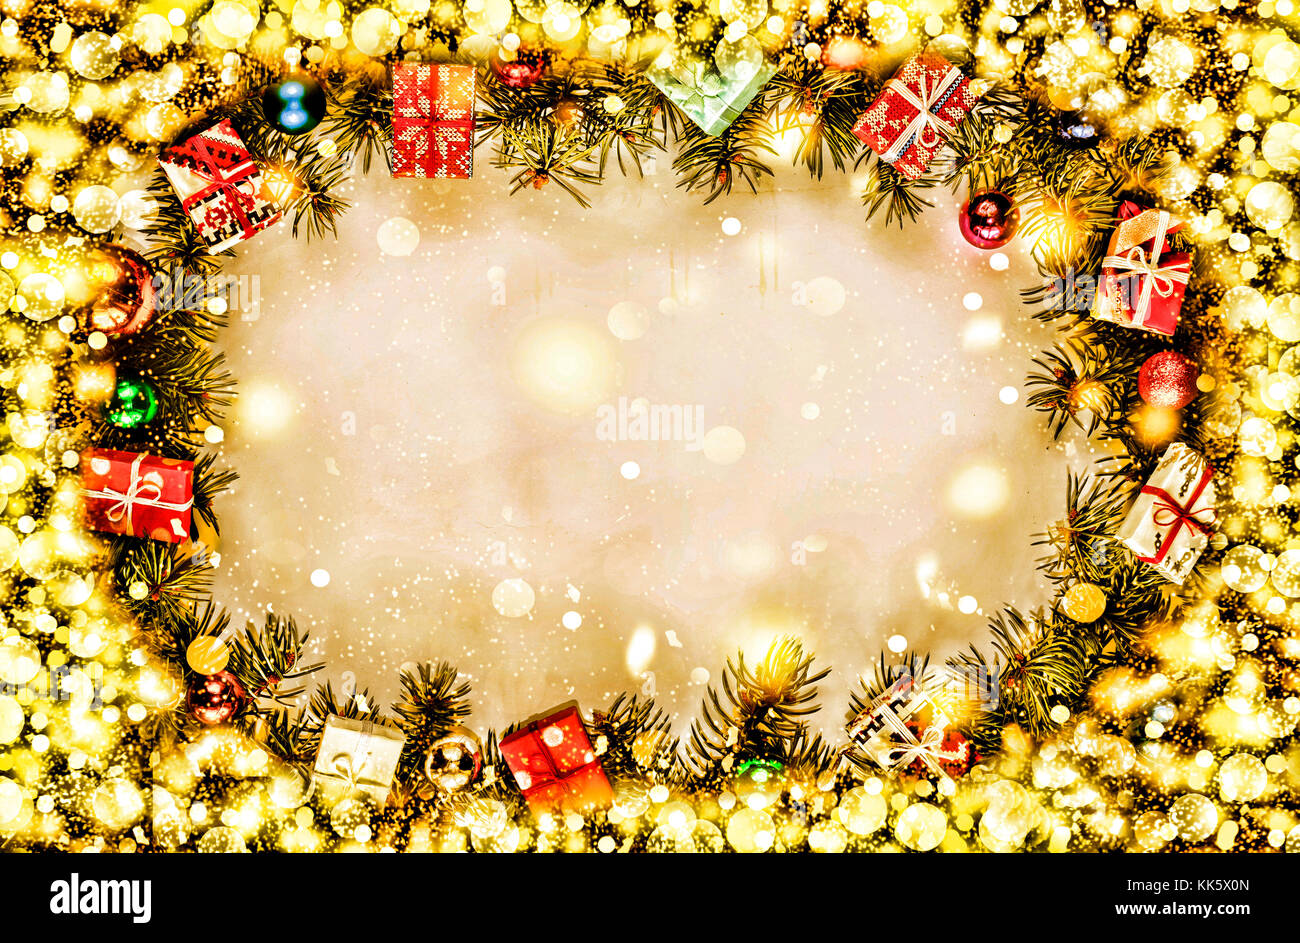 new year background frame of christmas tree branches and christmas decorations free space for text golden snow